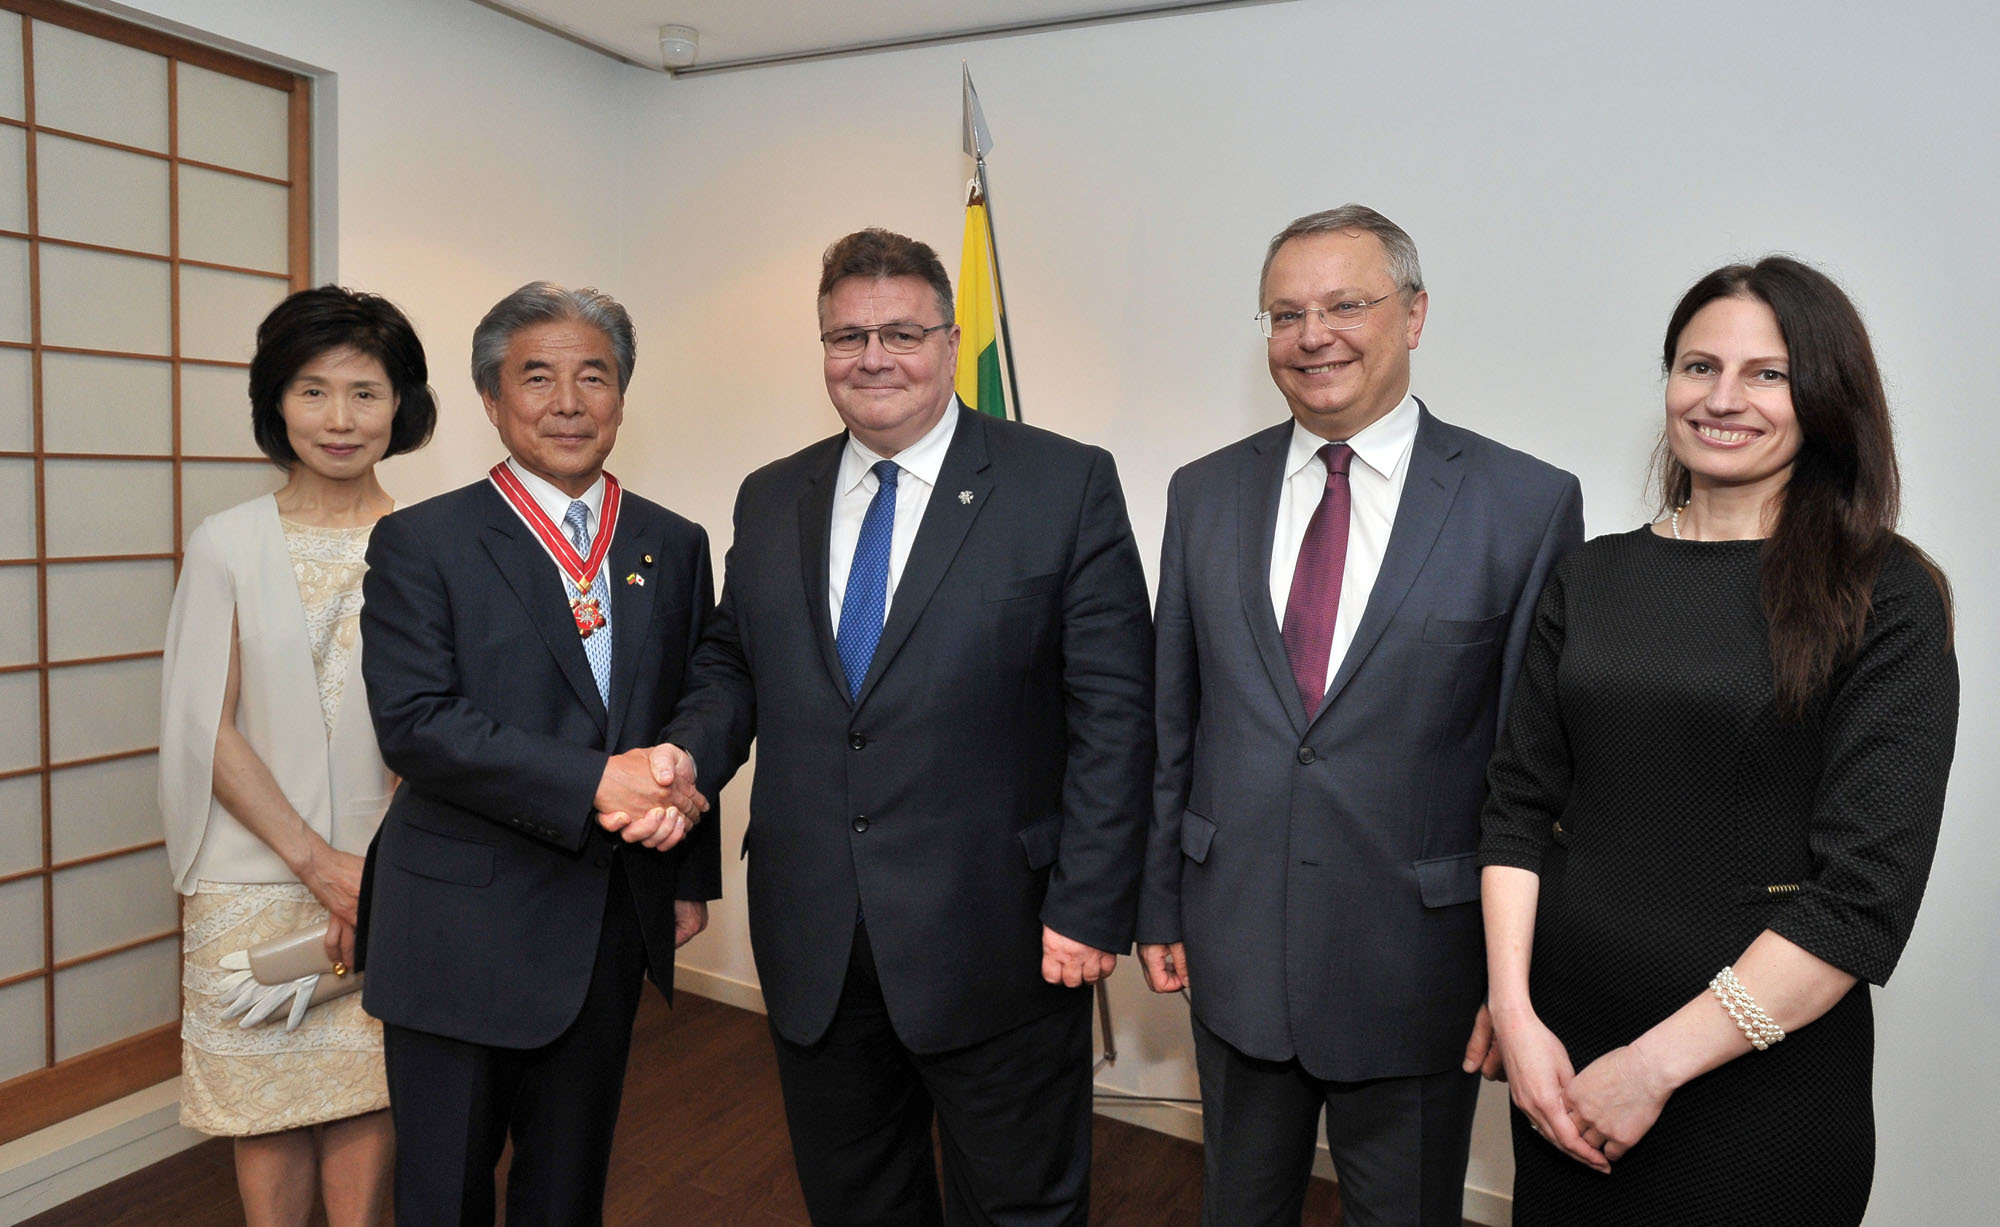 Lithuanian Foreign Minister Linas Linkevicius (center right) shakes hands with Hirofumi Nakasone, chairman of the Japan-Lithuania Parliamentary Friendship League, after receiving the Lithuanian Diplomacy Star during a reception at the embassy on May 10. Others pictured are (from left) Nakasone's wife, Mariko, Lithuanian Ambassador Egidijus Meilunas and his wife, Galina. |  YOSHIAKI MIURA